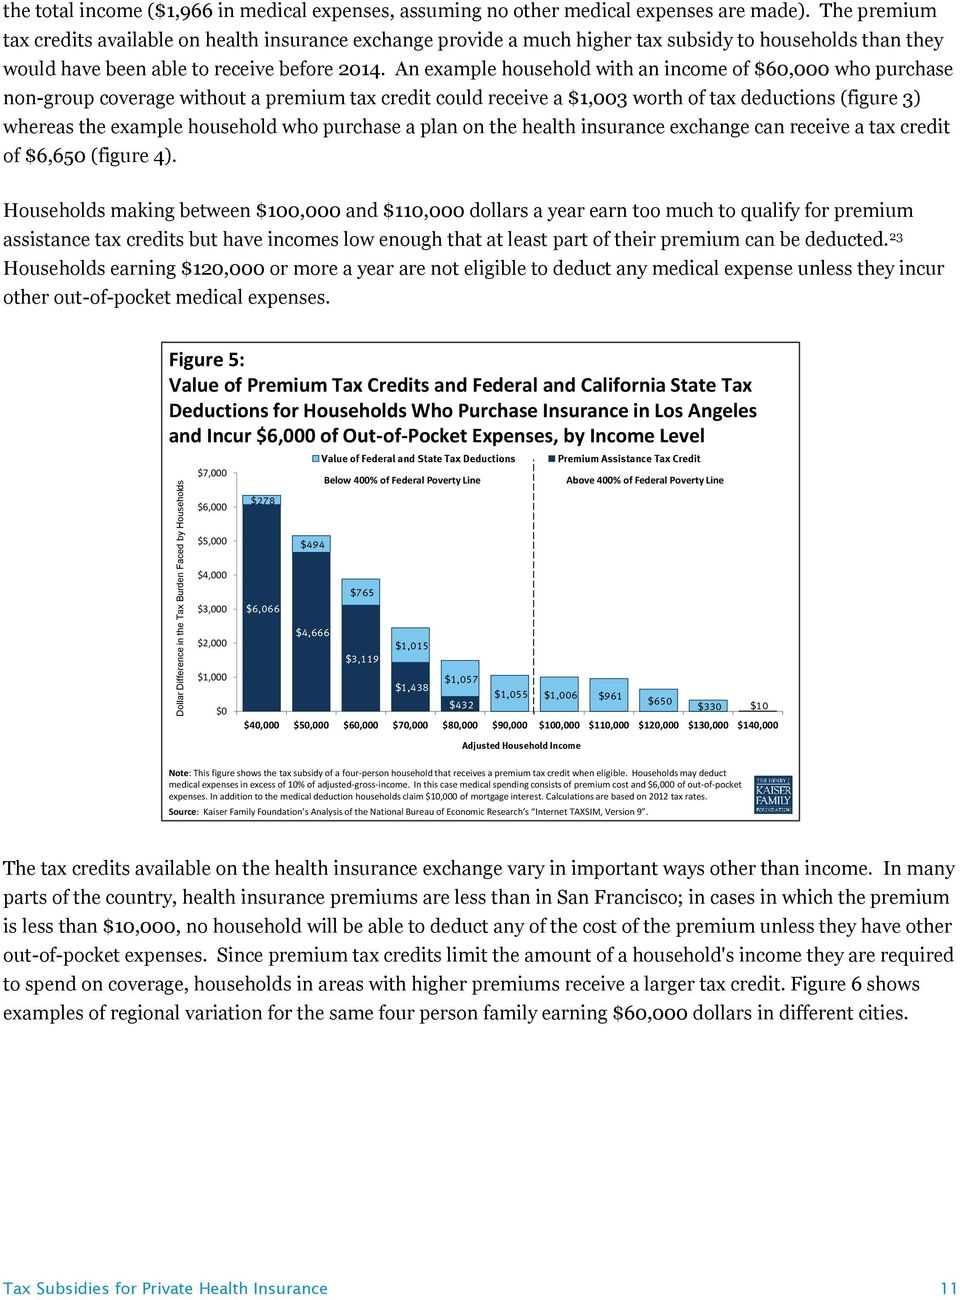 An example household with an income of $60,000 who purchase non-group coverage without a premium tax credit could receive a $1,003 worth of tax deductions (figure 3) whereas the example household who